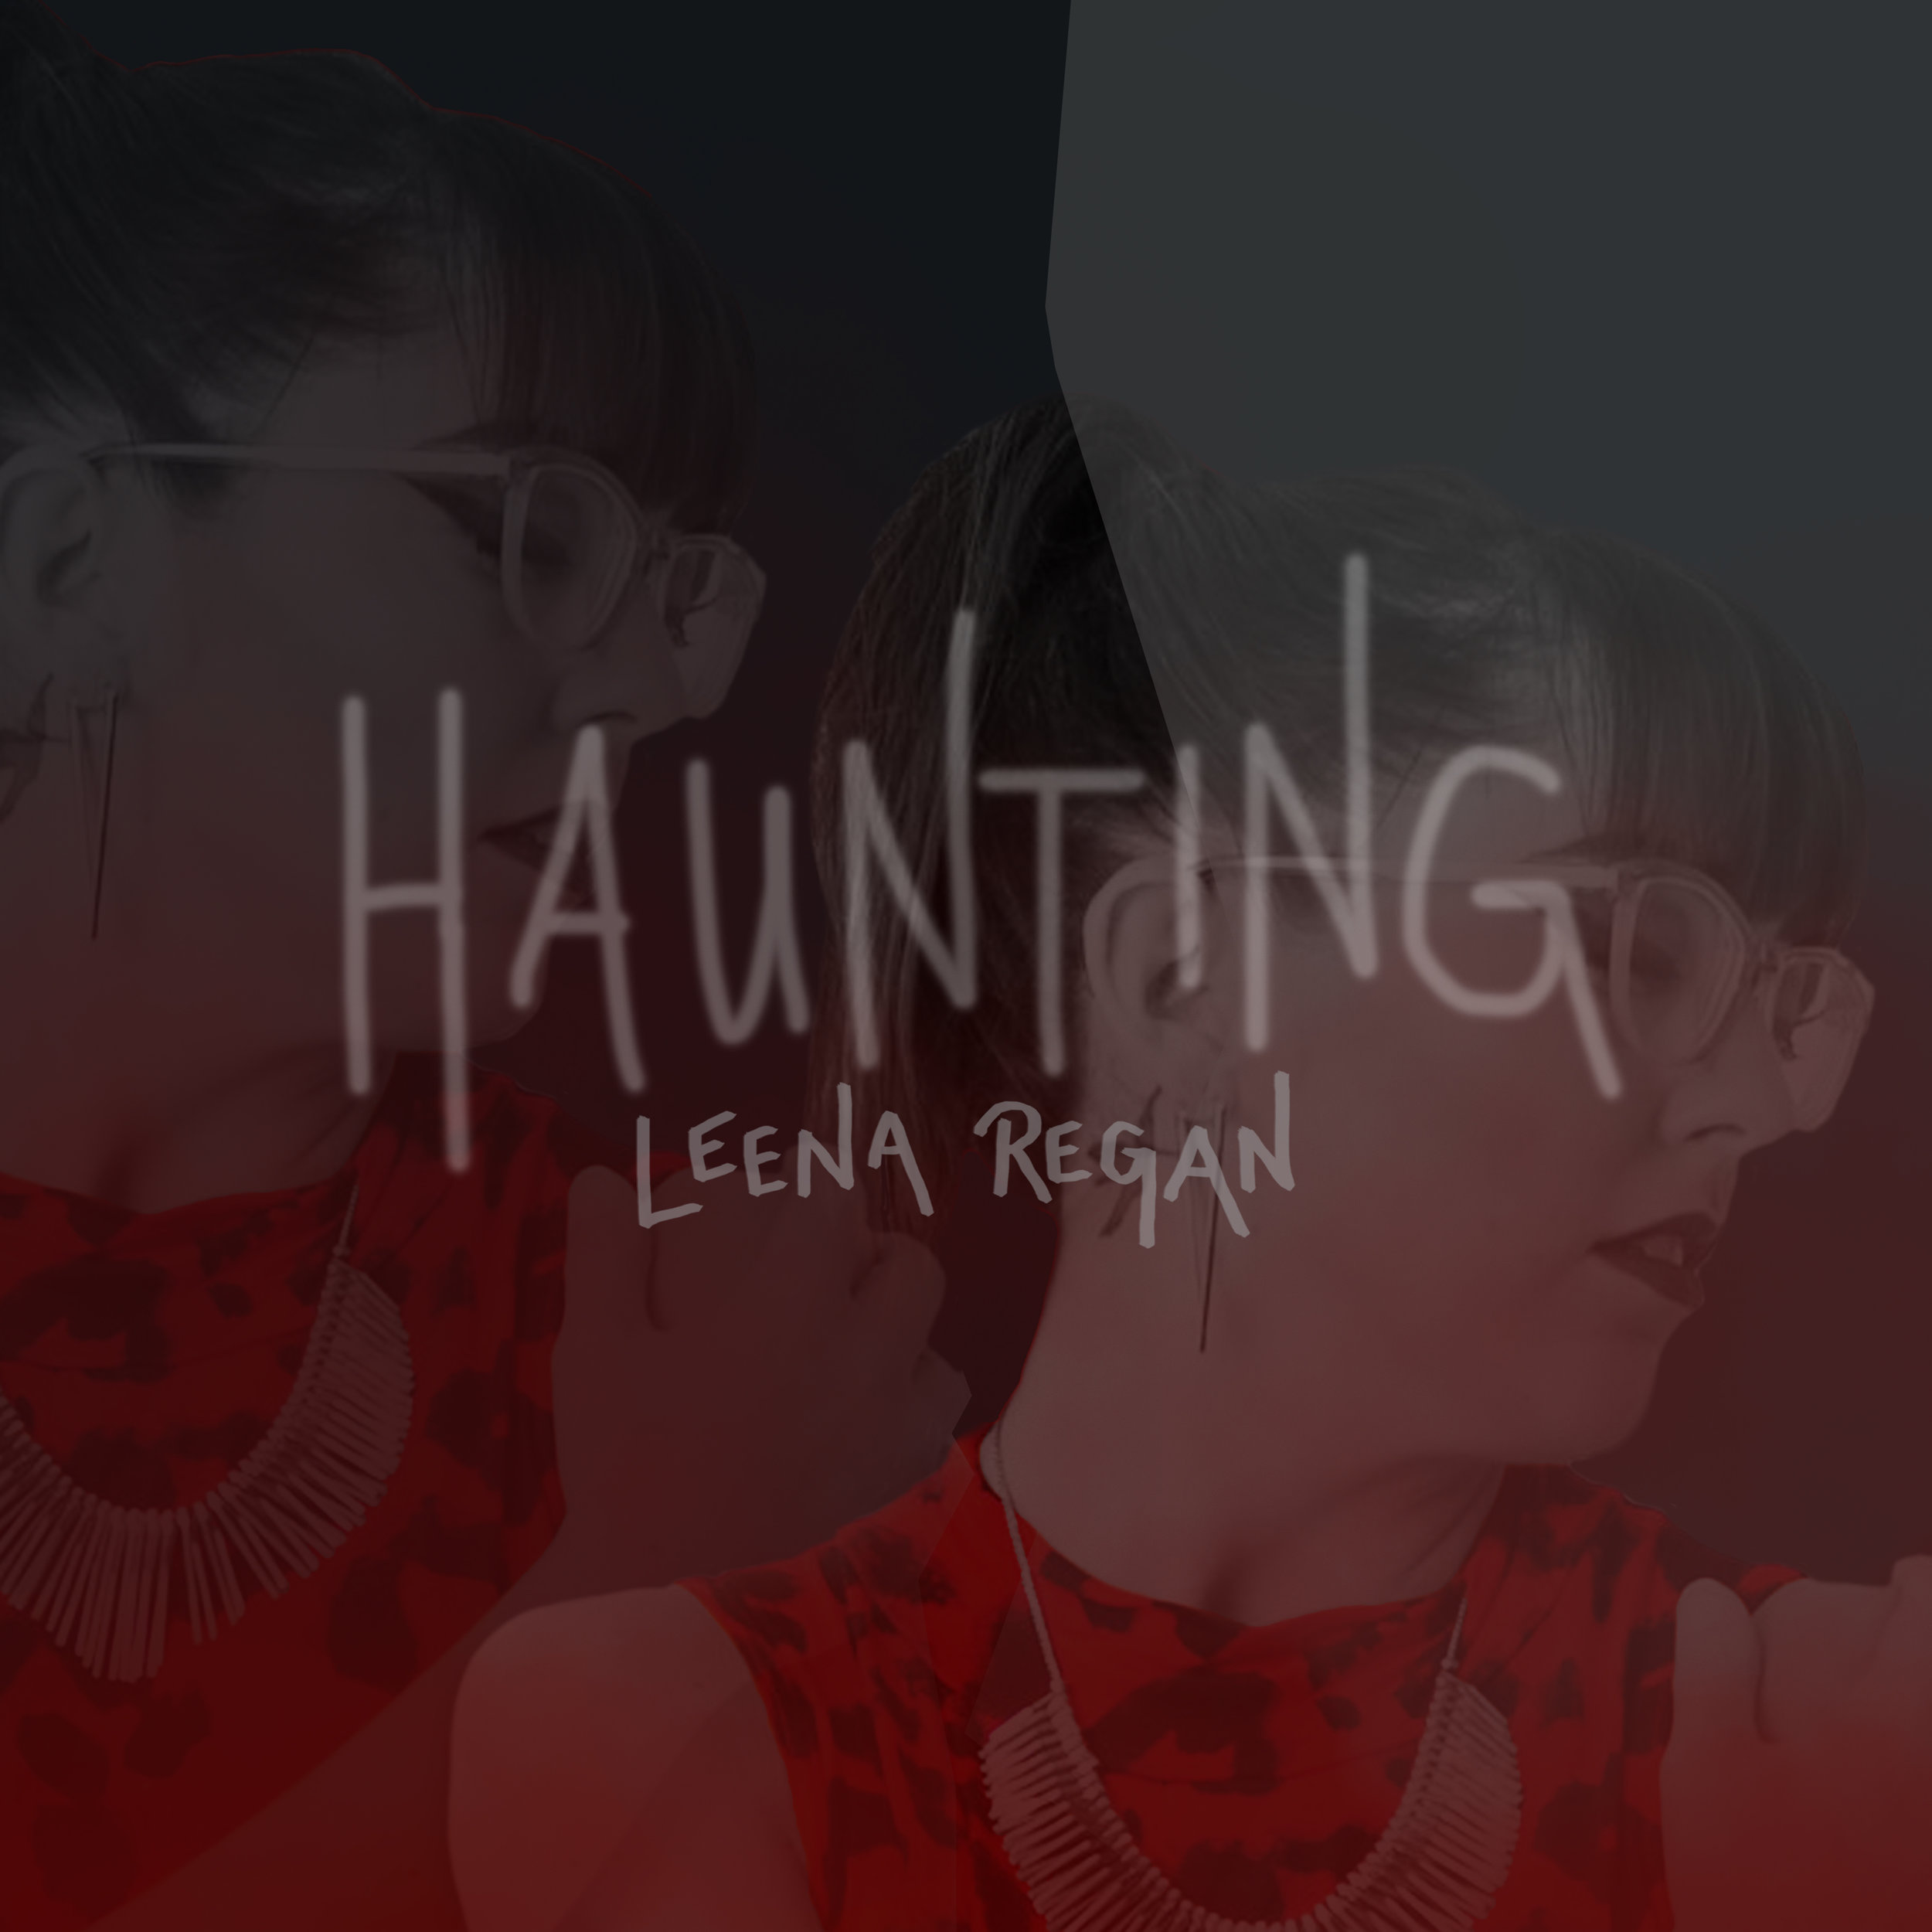 "CLICK THE ABOVE IMAGE FOR DETAILS AND PRESS CONTENT RELATED TO LEENA REGAN'S UPCOMING SINGLE, ""HAUNTING."" FOR INQUIRIES, CONTACT INDIEROCKSTARSPR@GMAIL.COM."